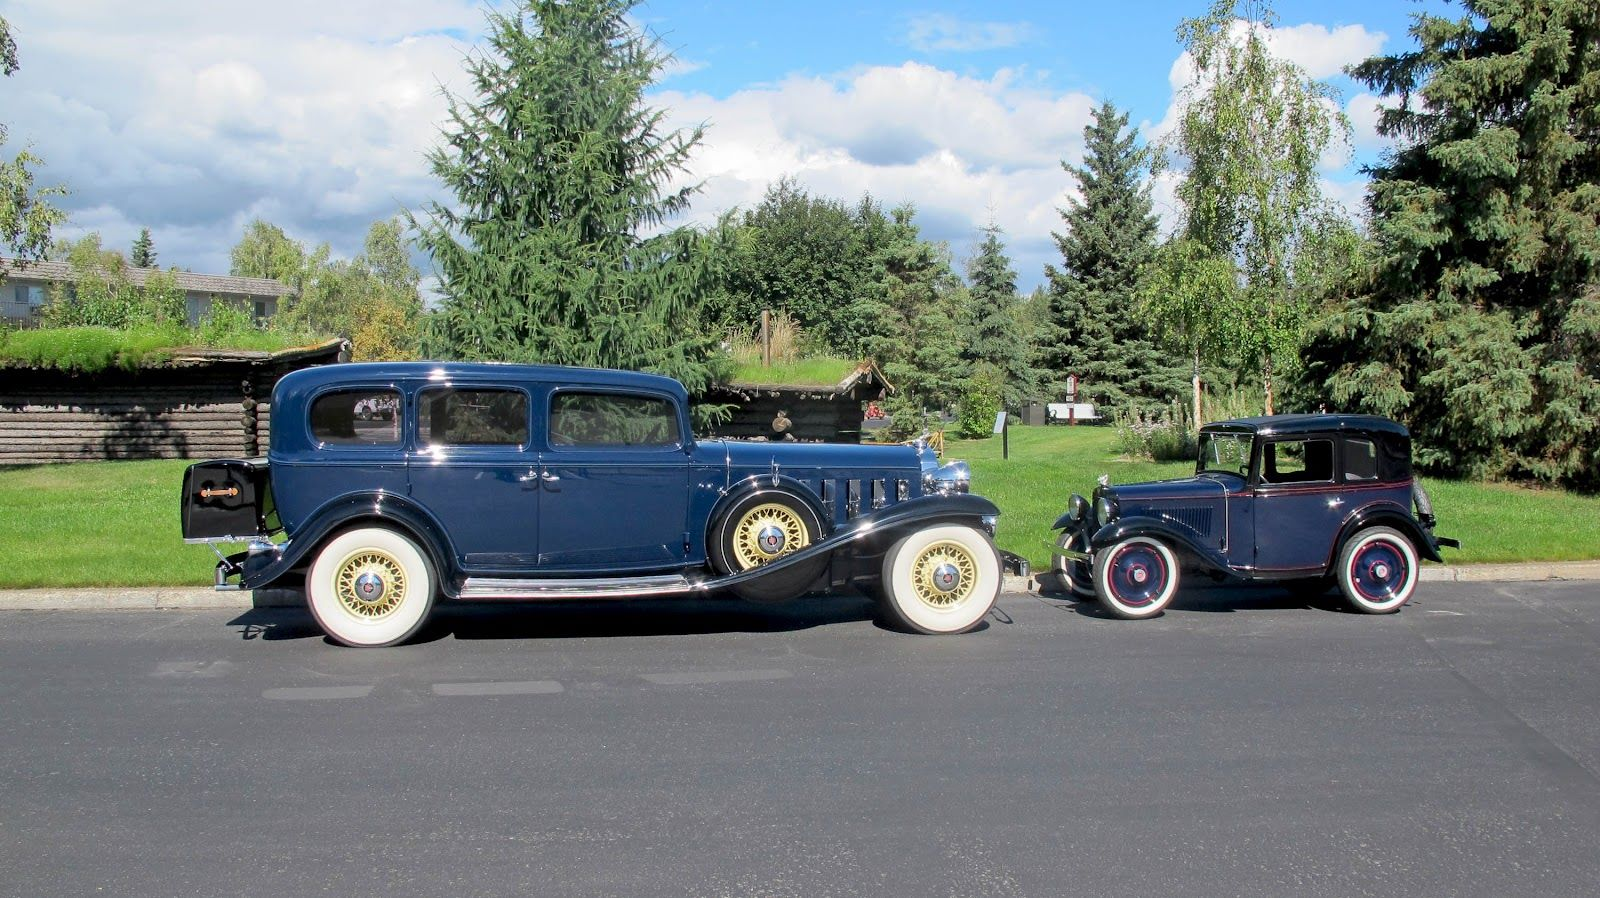 1932-Cadillac-V16-Imperial-Limousine--1934-American-Austin-Series-475-Coupe